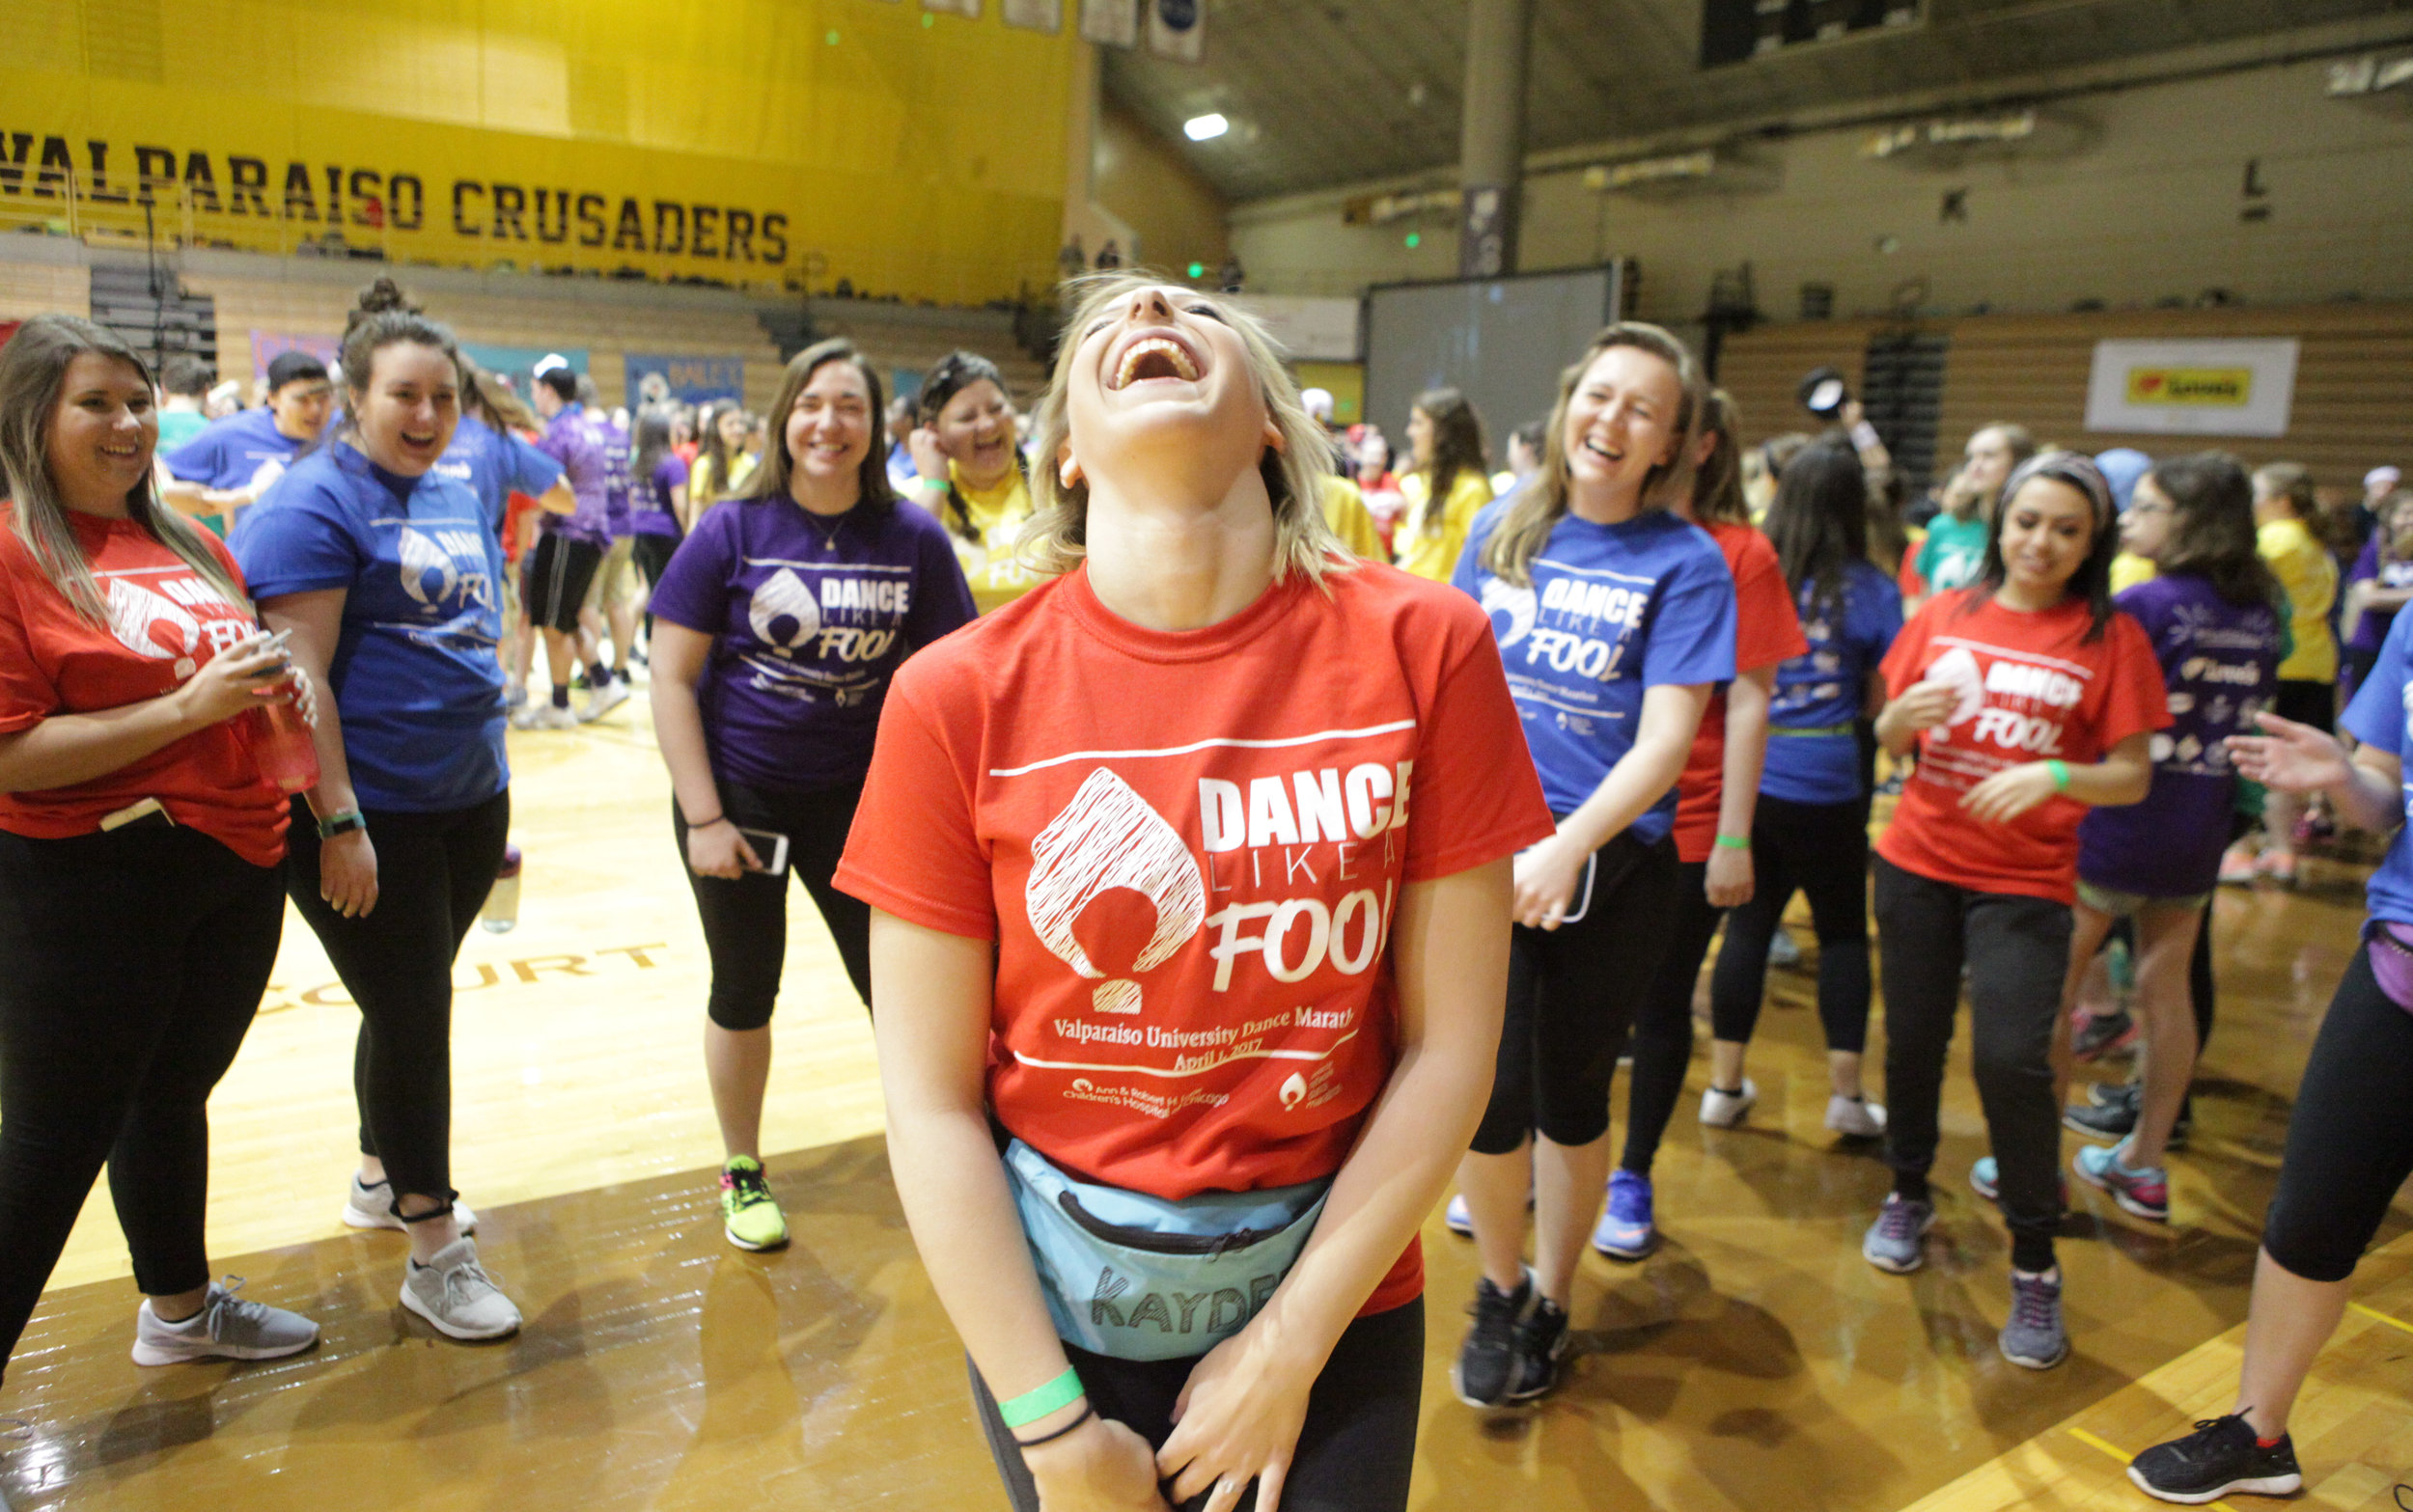 Jorie Pudil, a student at Valparaiso University, has a laugh while dancing during the Valparaiso University Dance Marathon at the Athletics-Recreation Center.